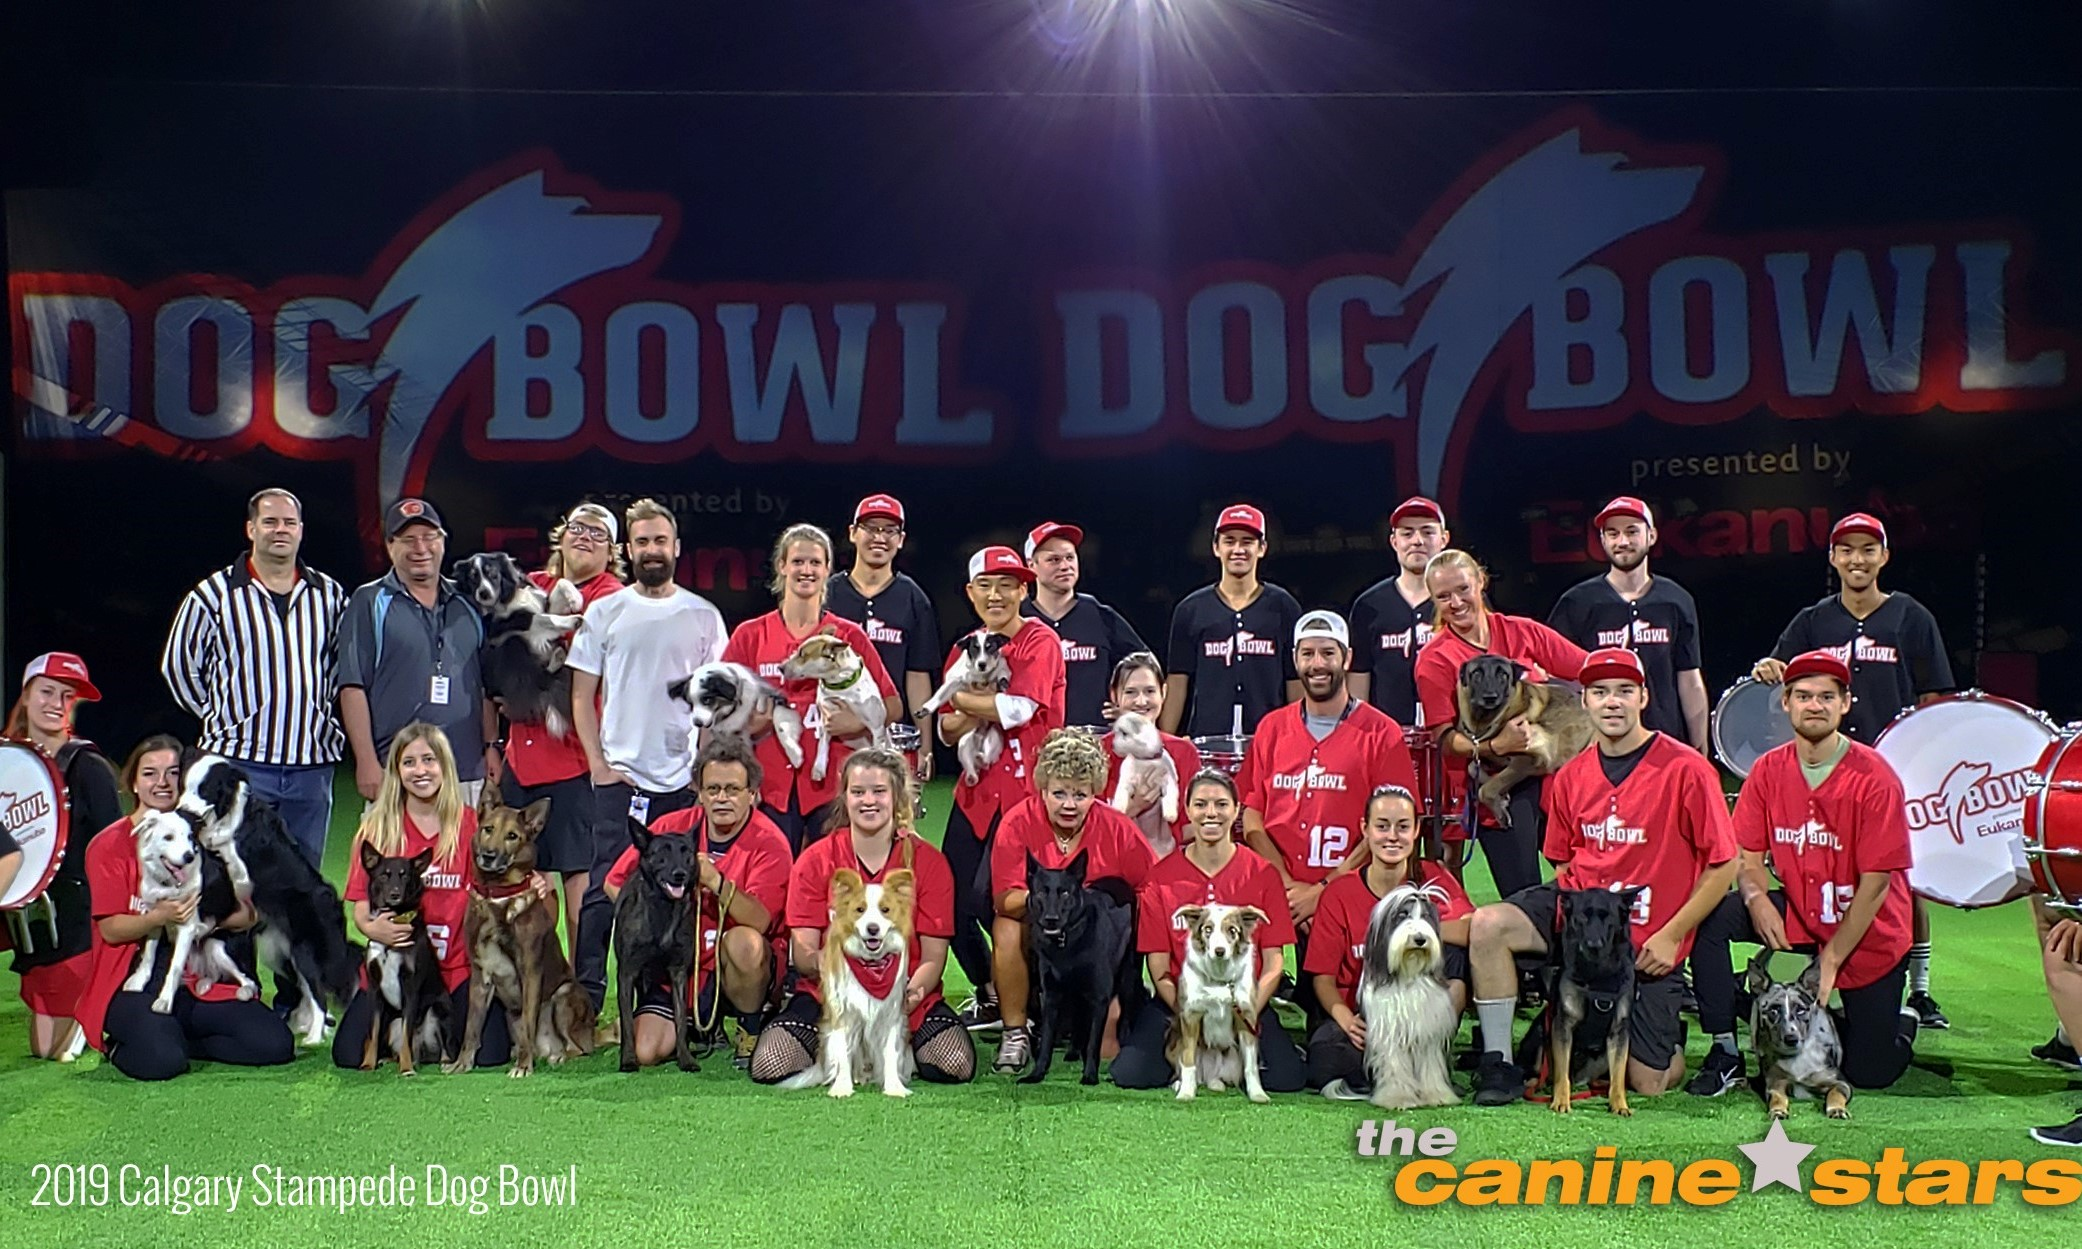 The Canine Stars Team at the Calgary Stampede Dog Bowl